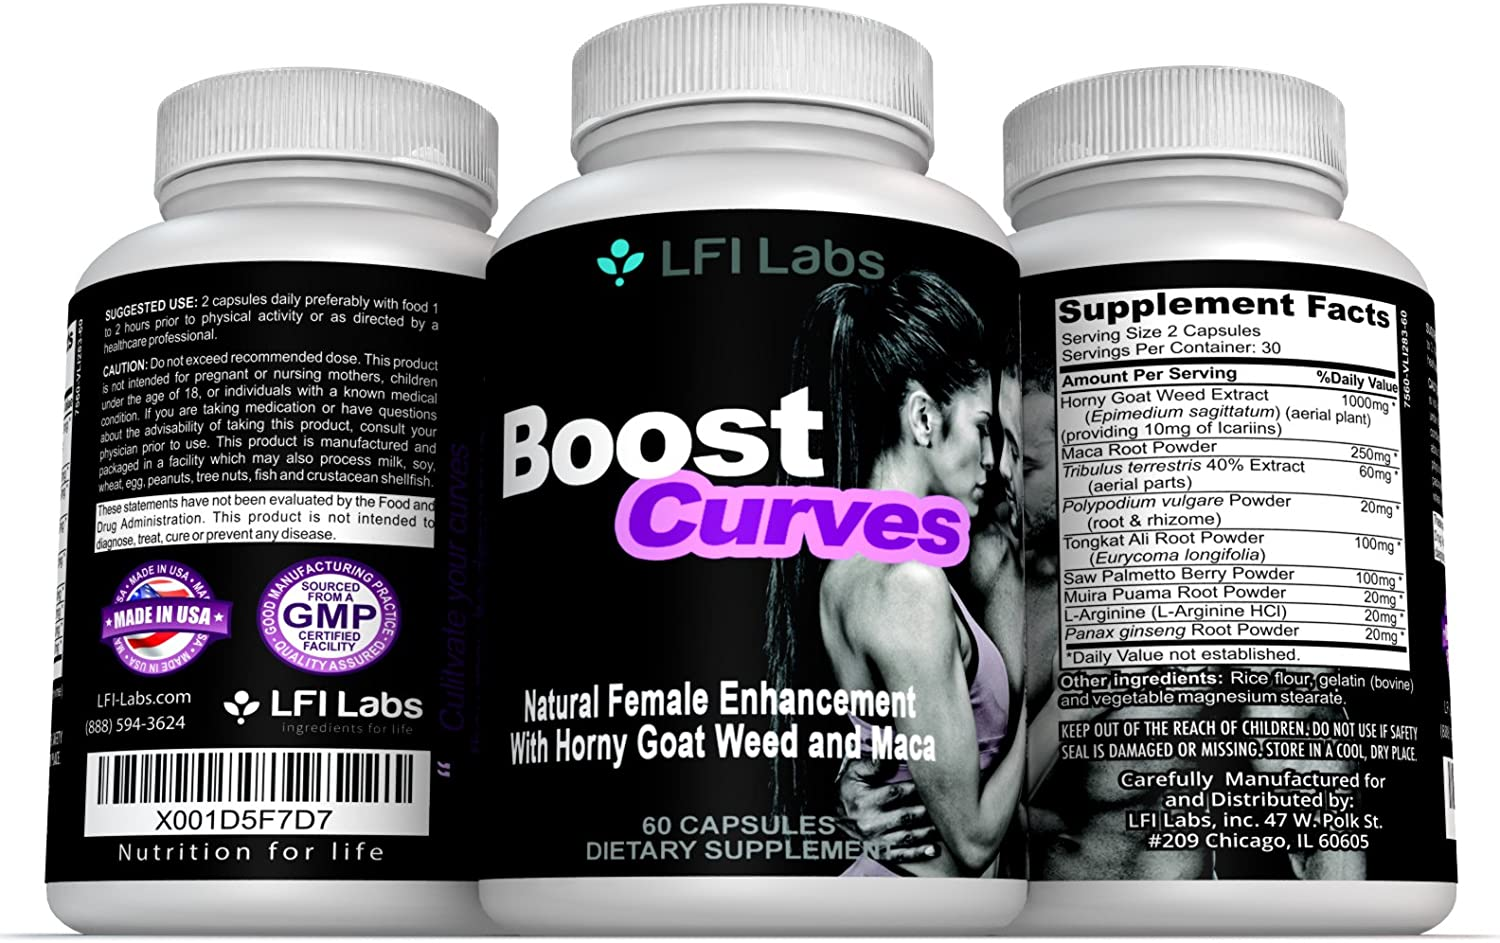 All stores are sold Boost Curves Ranking TOP10 Butt Lifting — Breast Enlargement Supplement